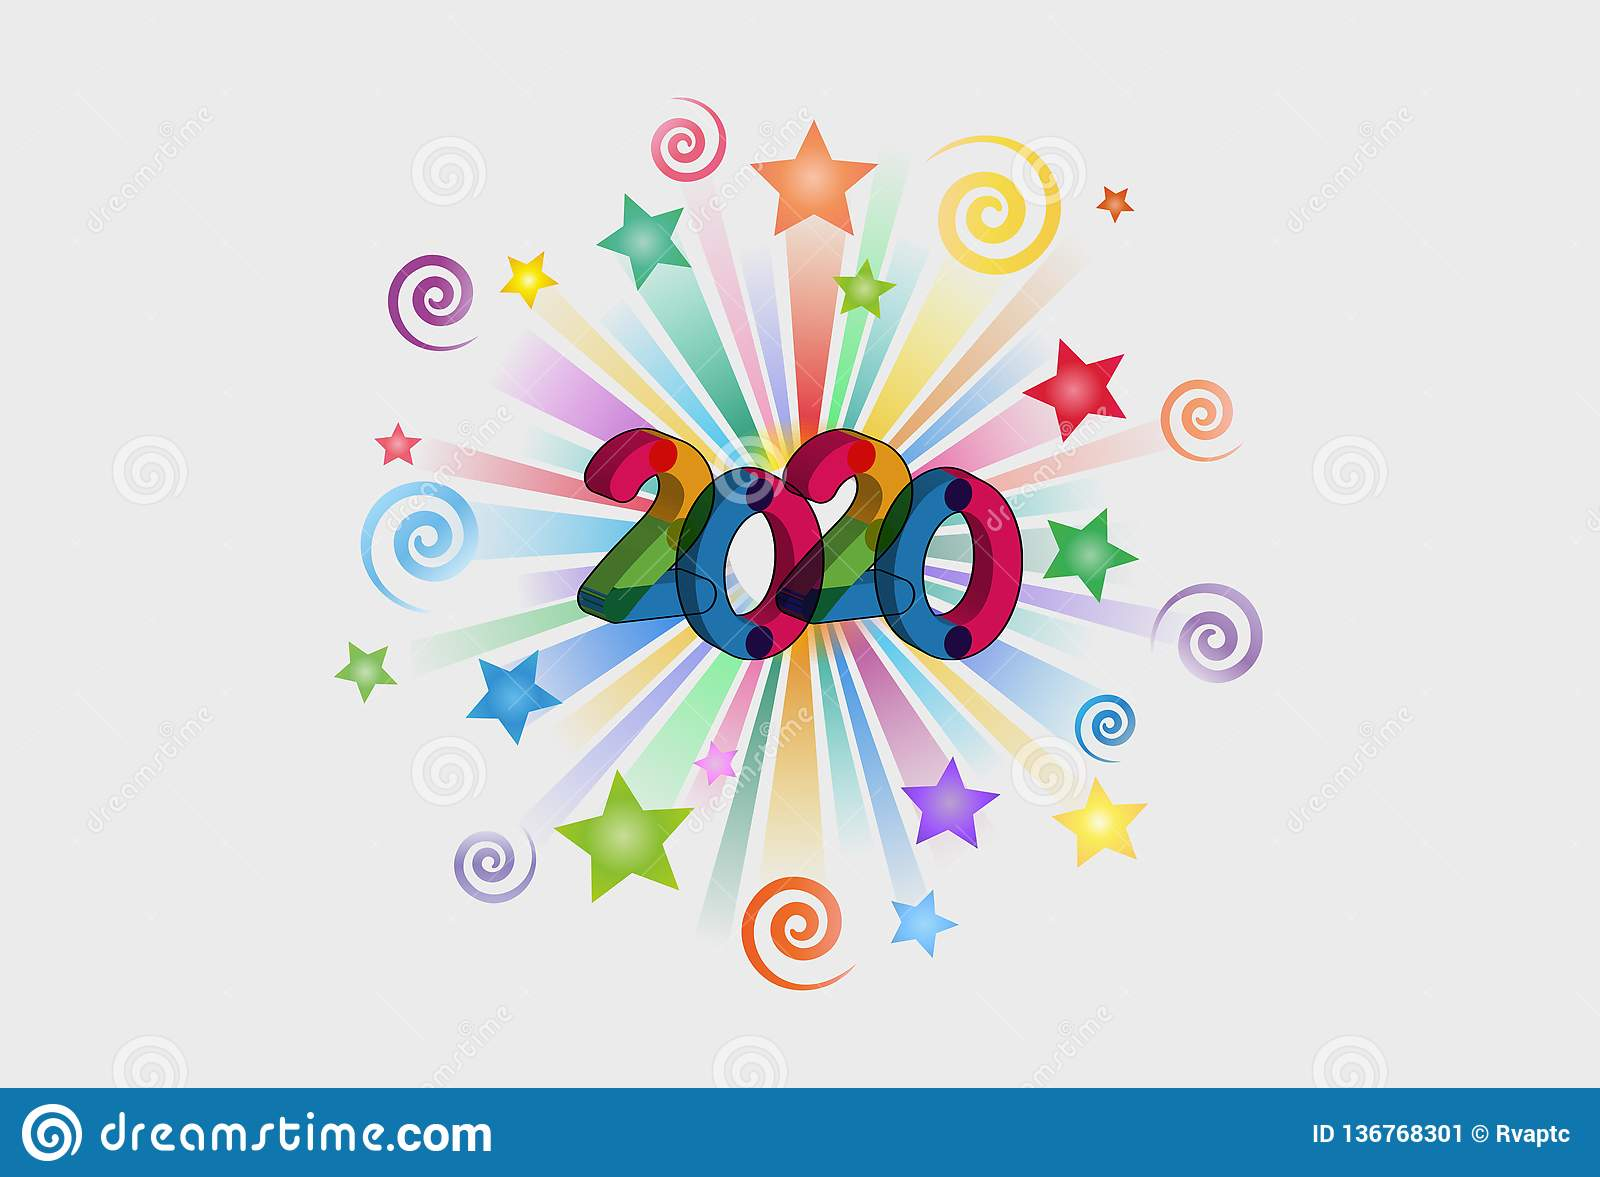 Happy New Year 2020 Text Effect PNG